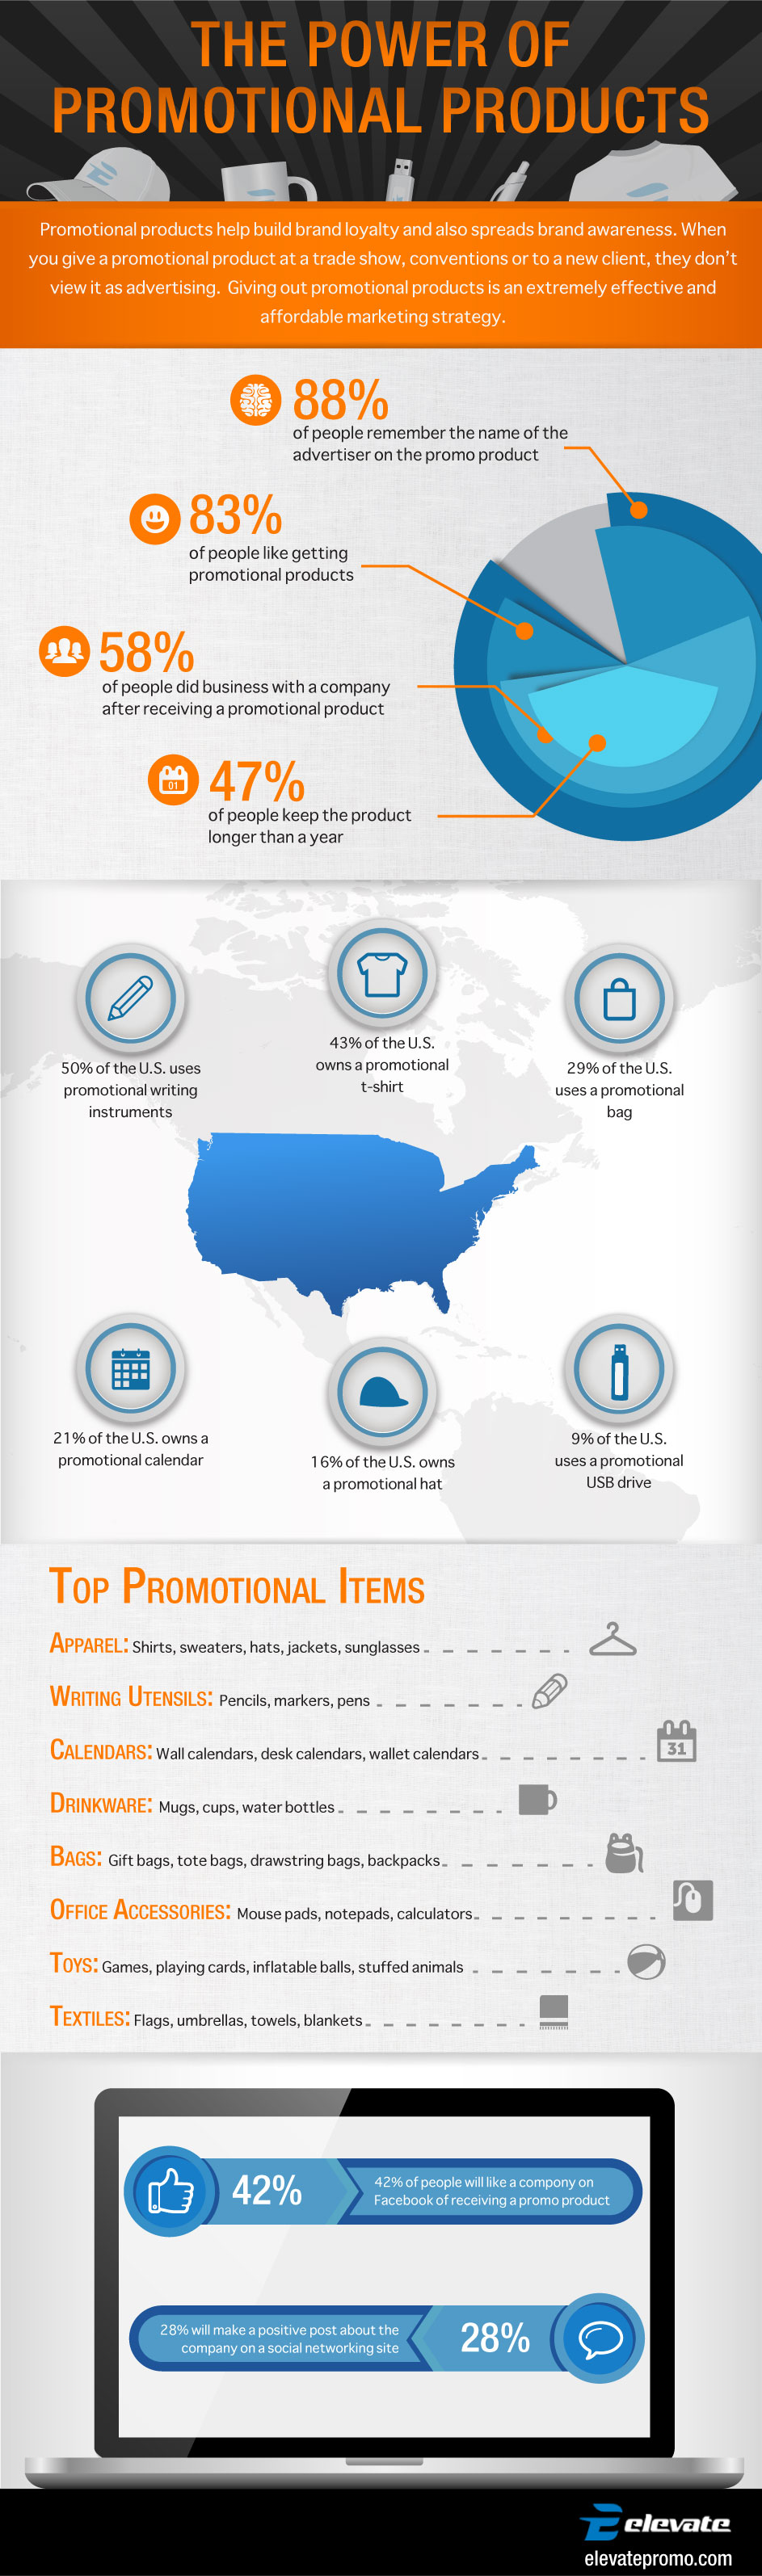 Elevate Promo, Print & Design: Power of Promotional Products in Marketing Infographic